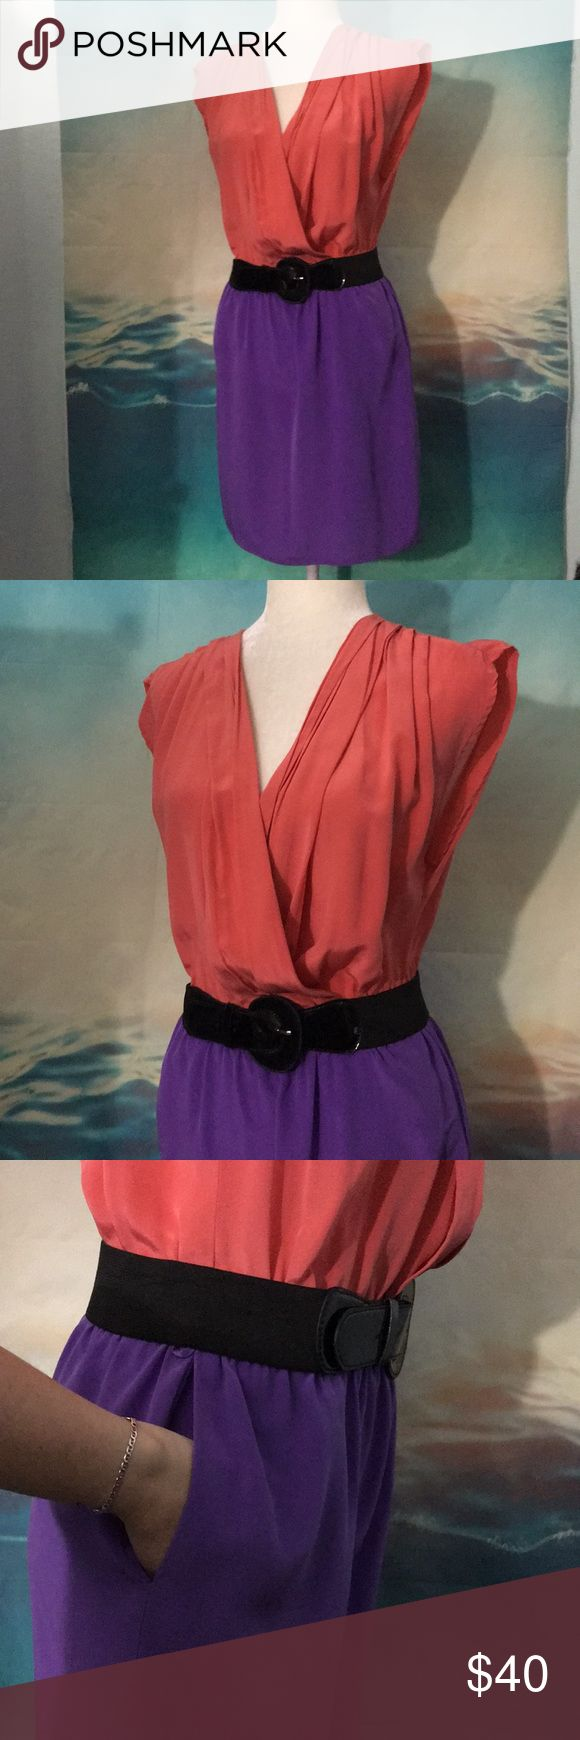 Retro Looking Charlie Jade Silk Dress C Amazing retro looking dress. Coral and purple. 100% Silk dress with pockets. Comes with the black belt. Great condition. Charlie Jade Dresses